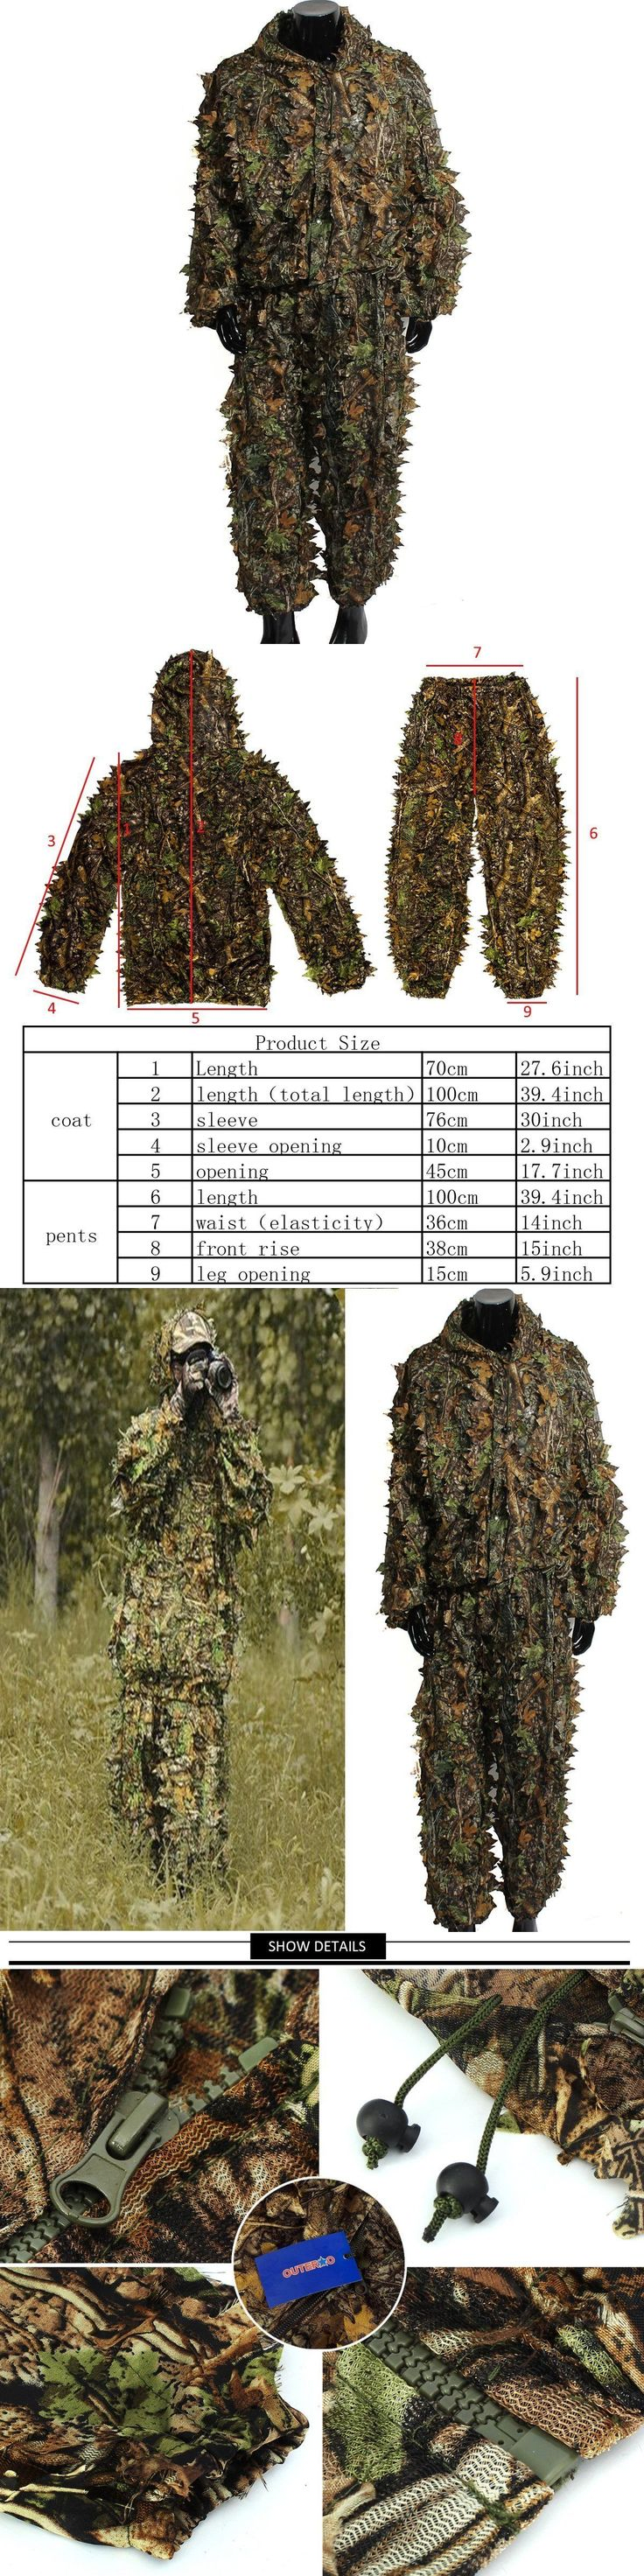 Ghillie Suits 177870: Outerdo Ghillie Suits 3D Leafy Camo Suits Woodland Camouflage,Halloween,Airsoft -> BUY IT NOW ONLY: $42.27 on eBay!